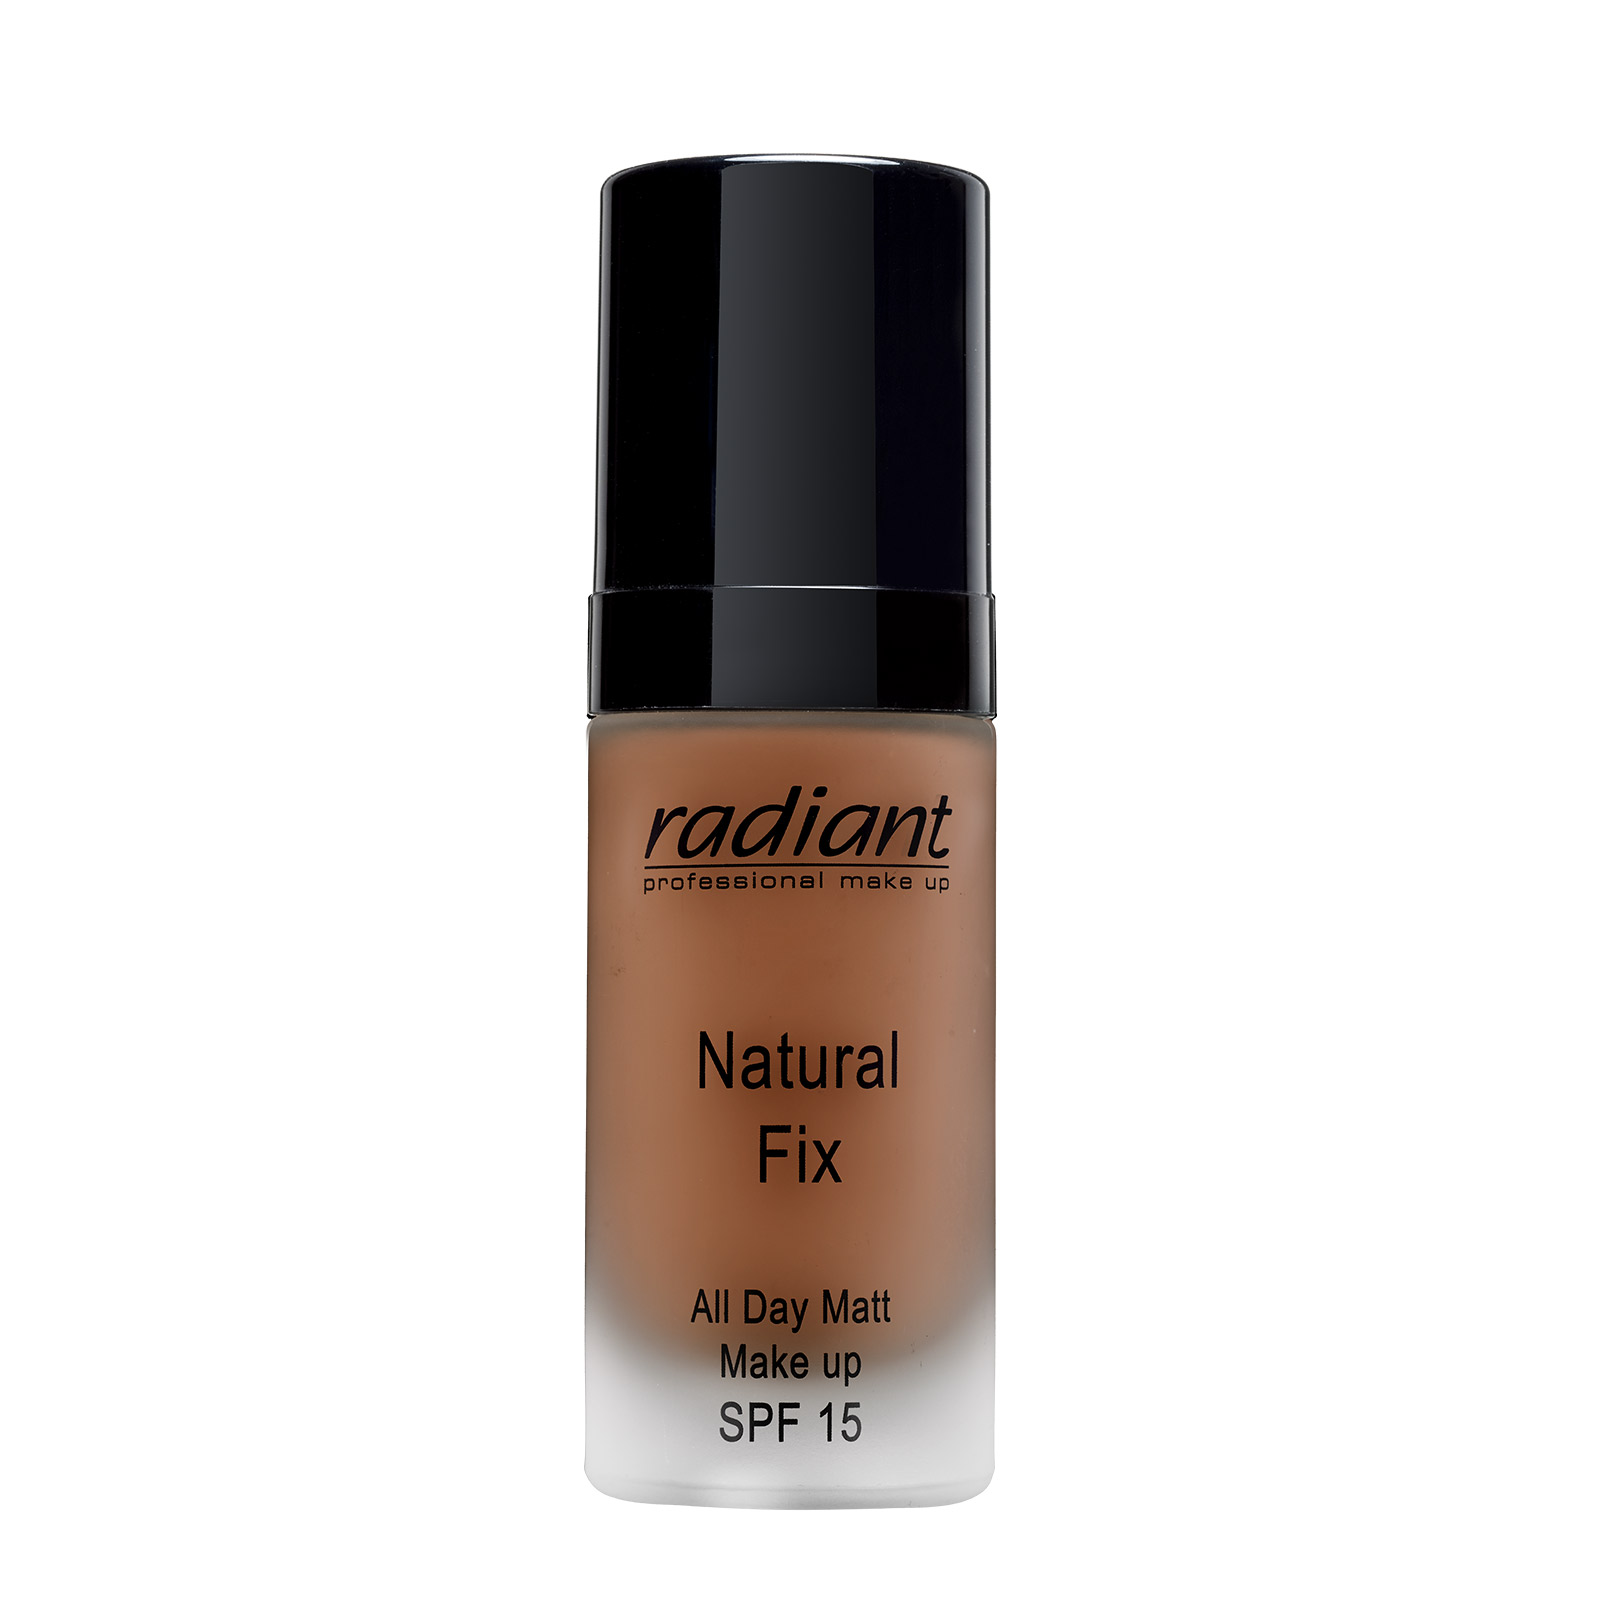 NATURAL FIX ALL DAY MATT MAKE UP SPF 15 (10 Chocolate)